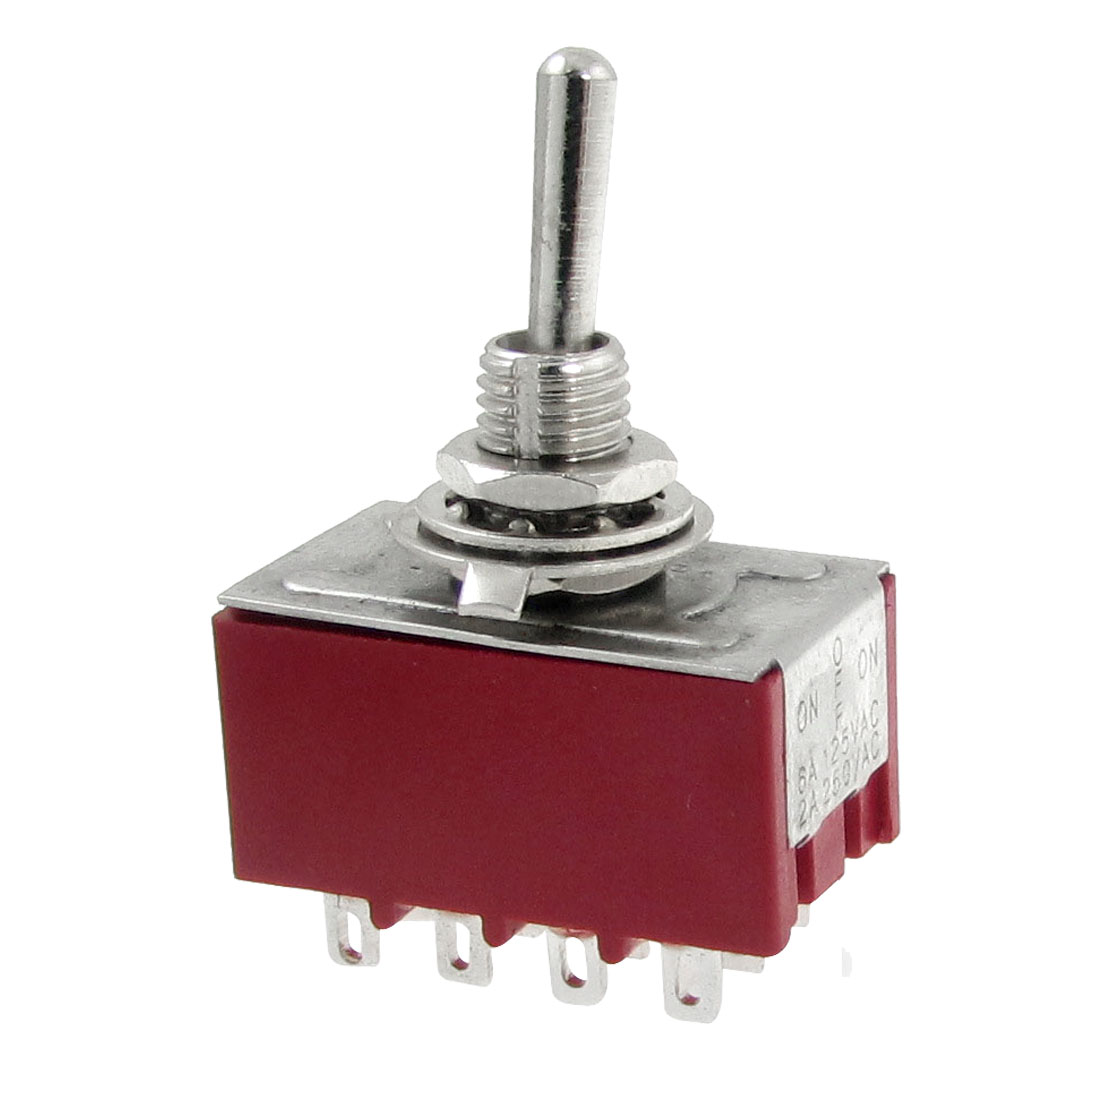 AC 250V 2A 125V 6A ON/OFF/ON 3 Position 4PDT 12 Pins Toggle Switch